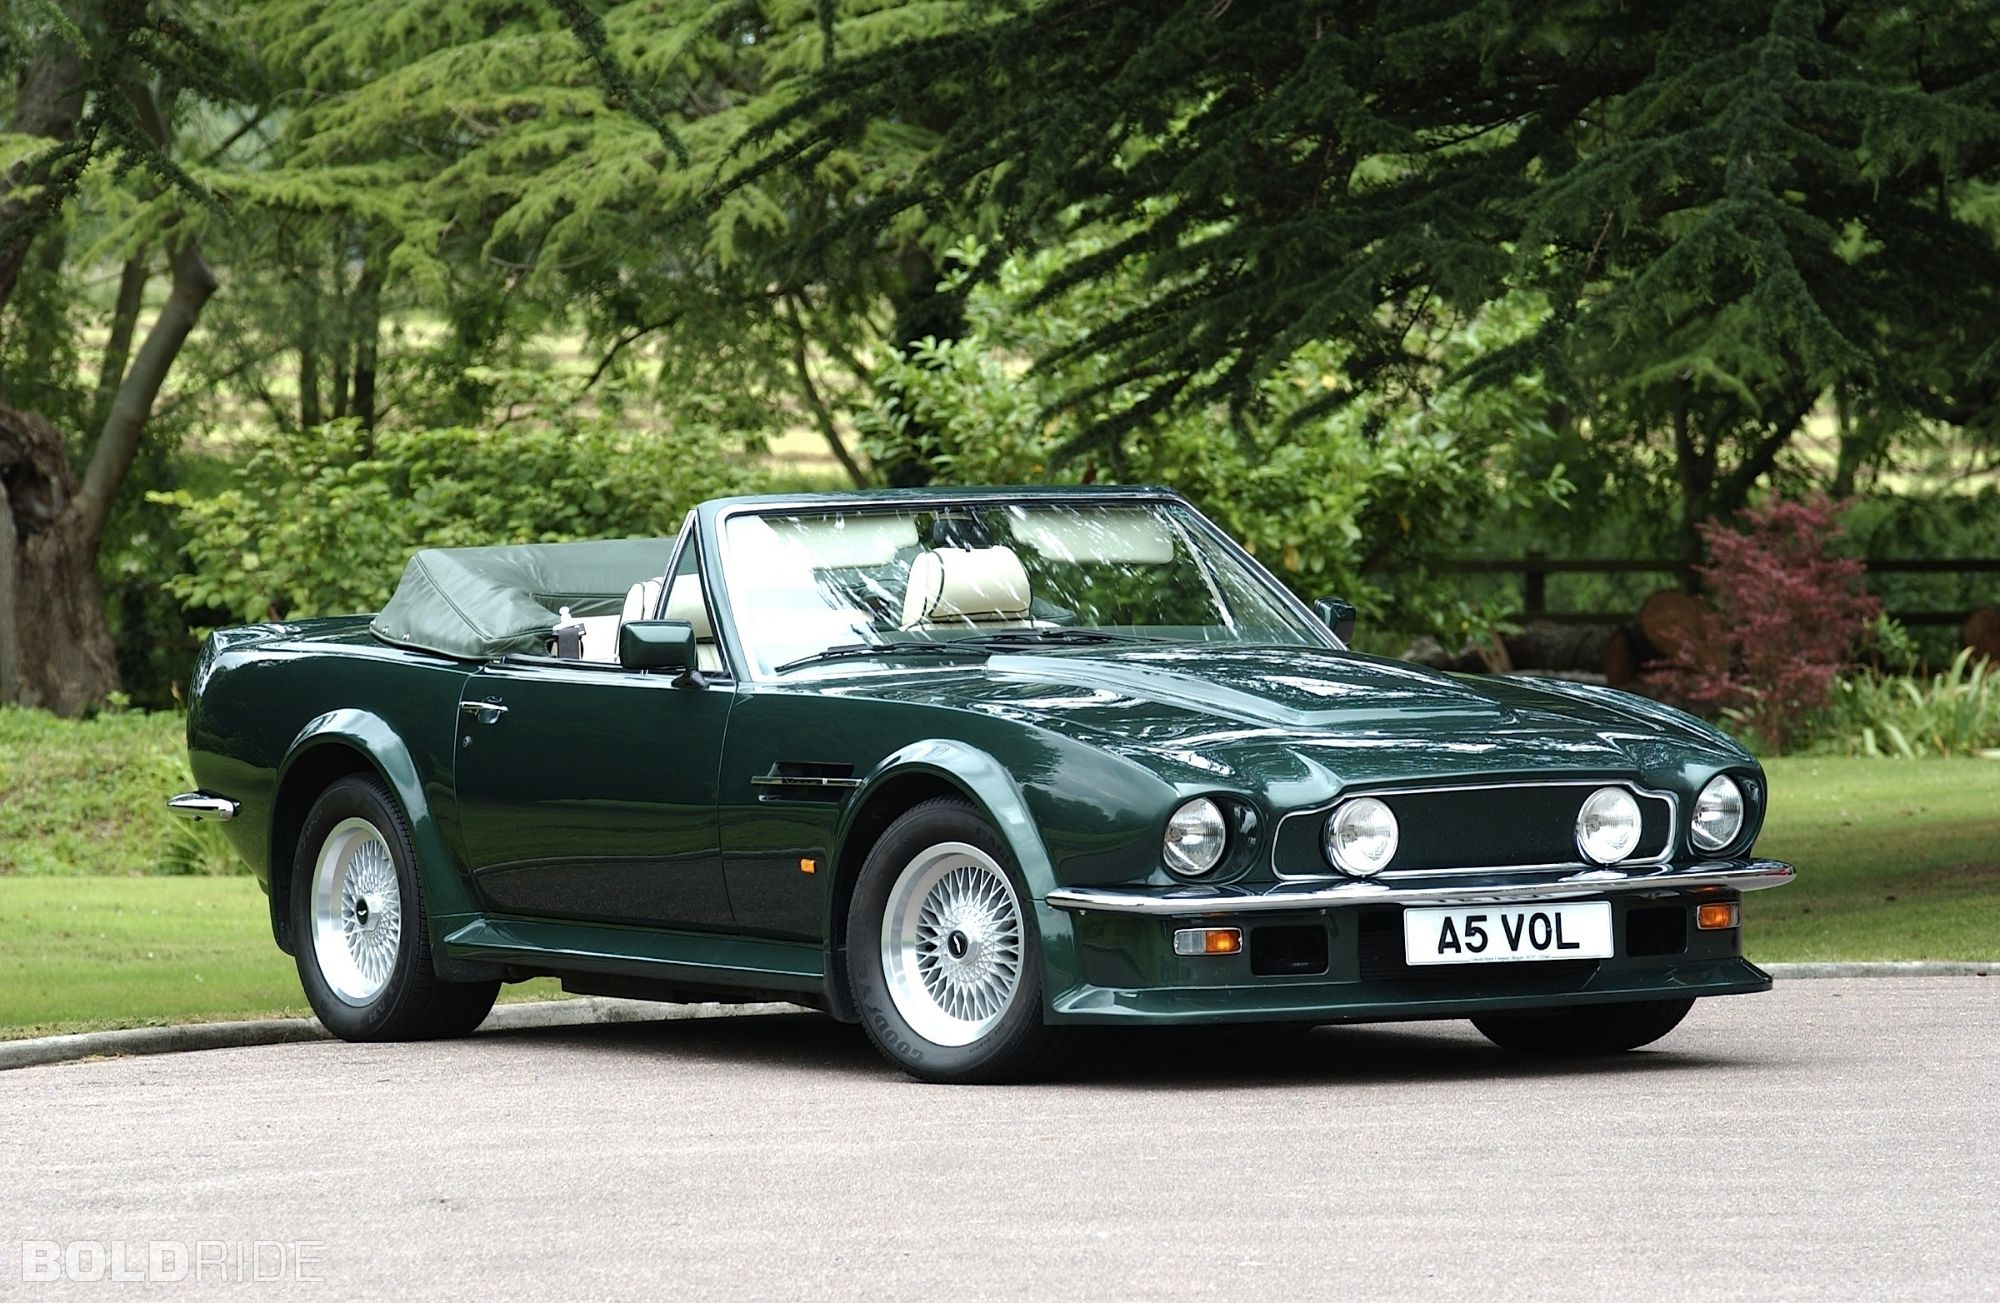 Aston martin v8 vantage volante xpack for sale